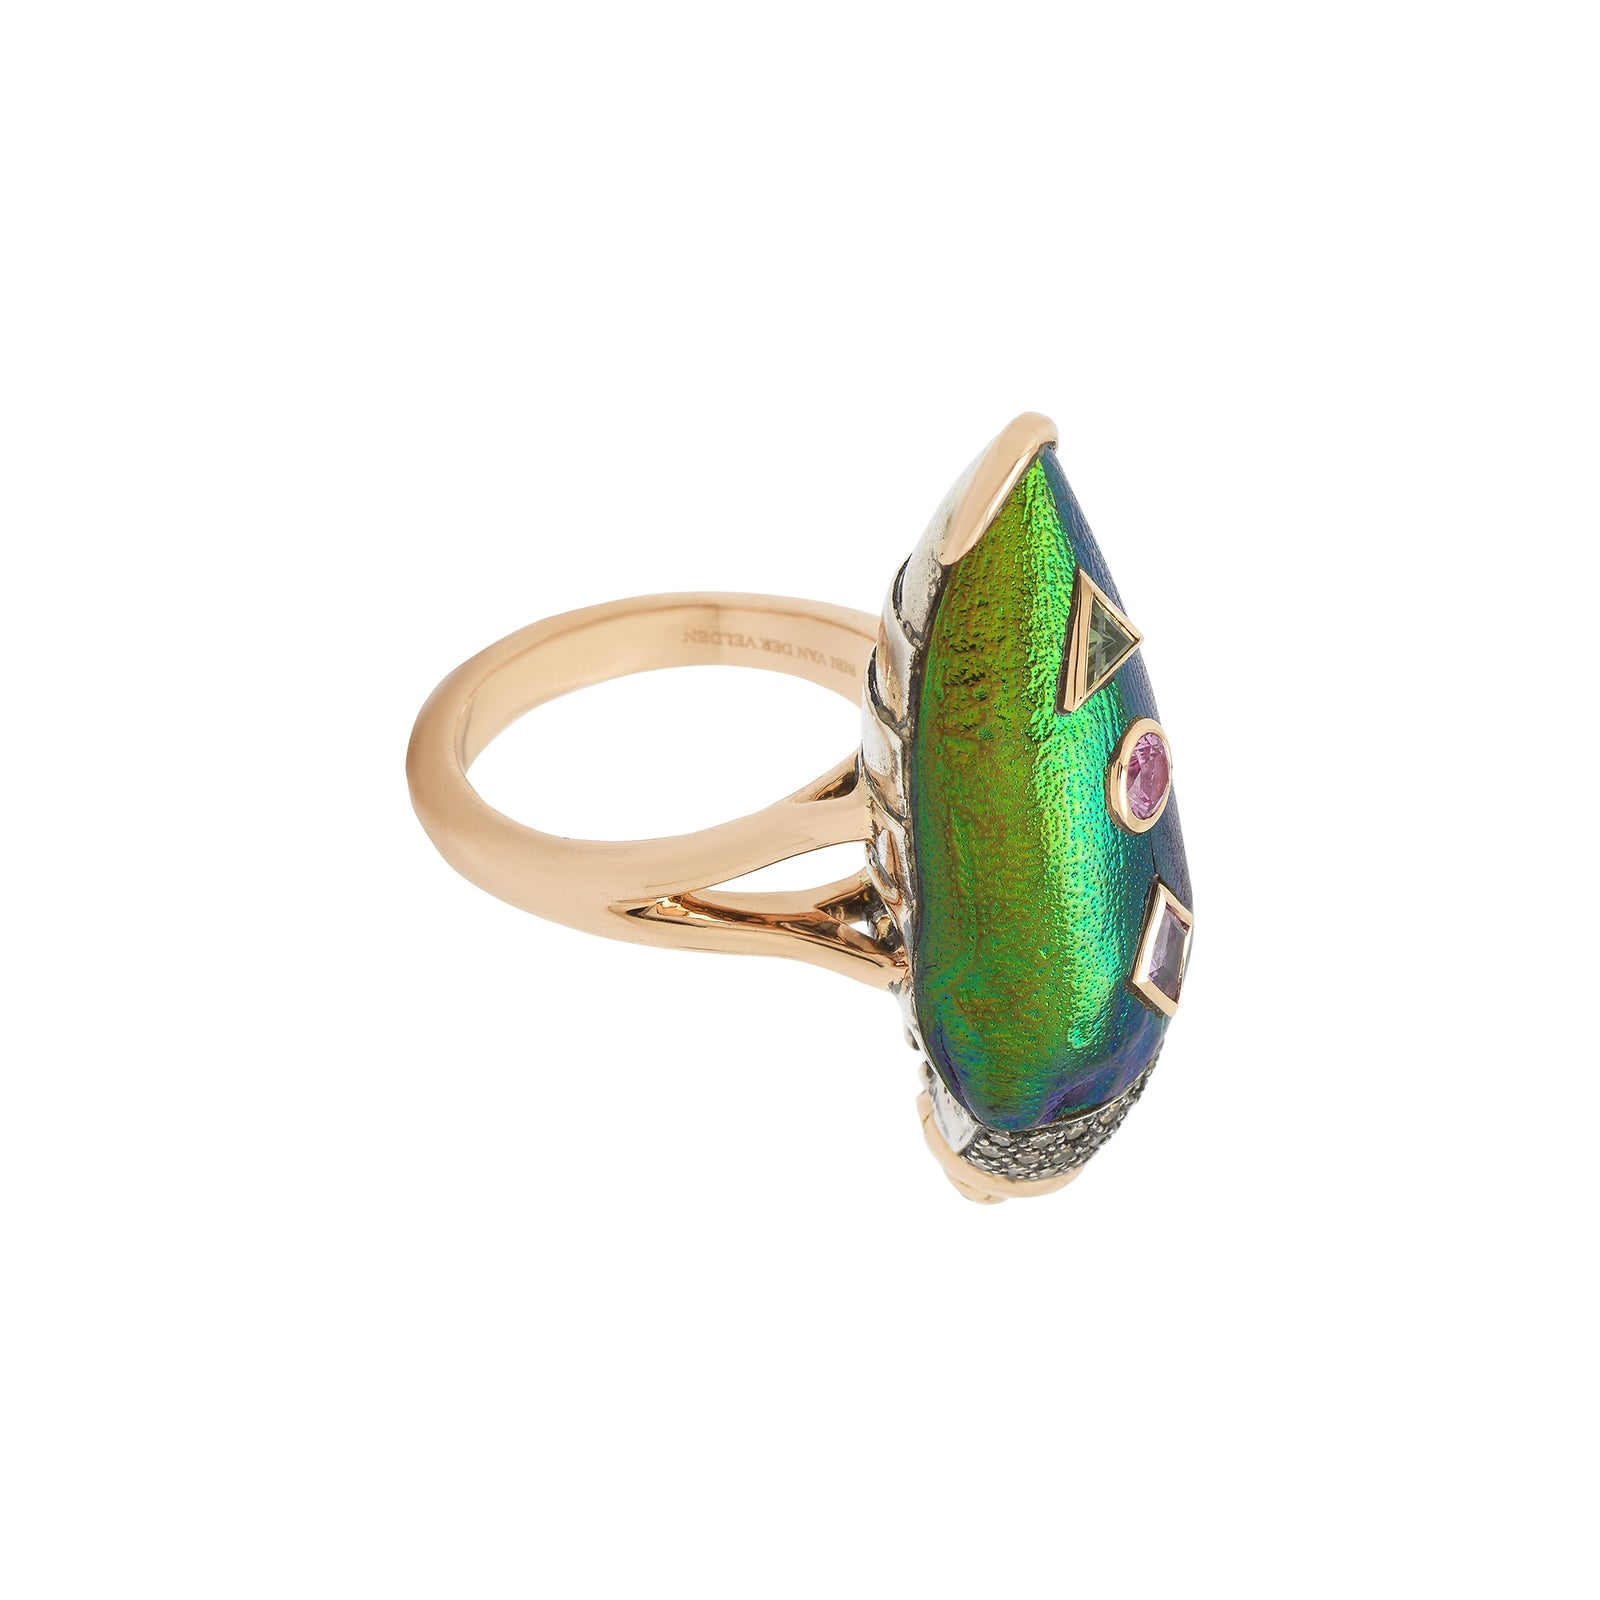 Bibi van der Velden Scarab Pop Art Ring - Rings - Broken English Jewelry